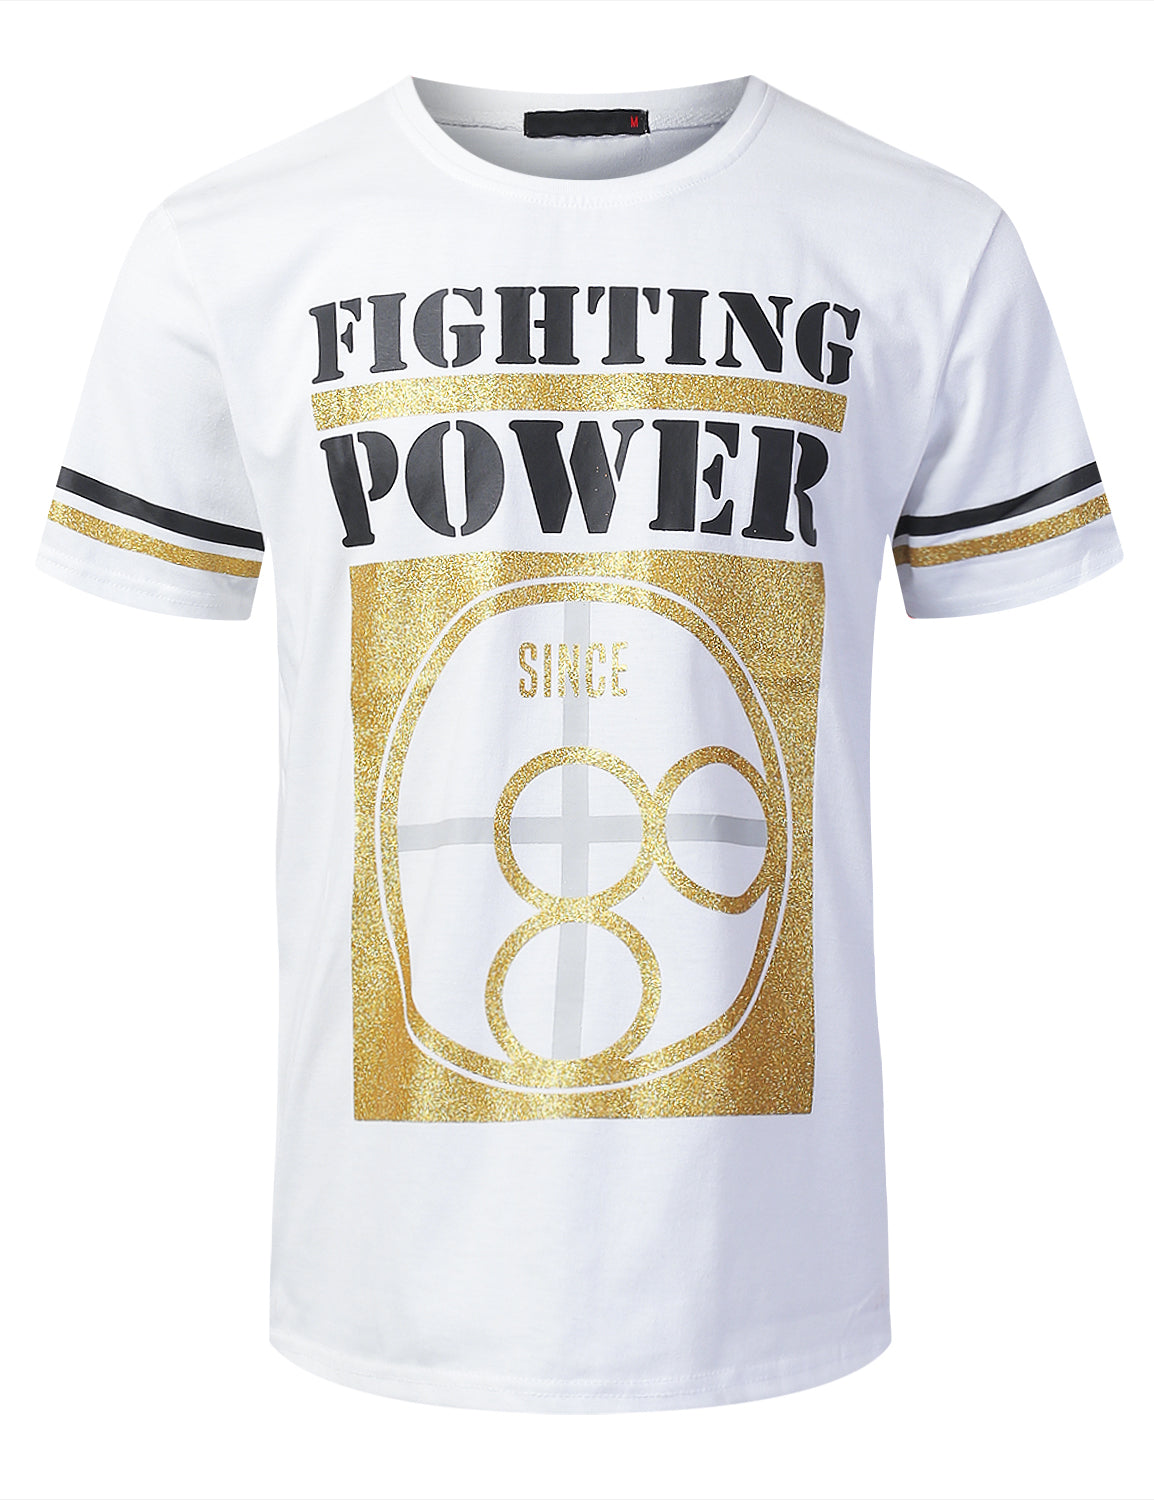 WHITE FIGHTING POWER Graphic T-shirt - URBANCREWS